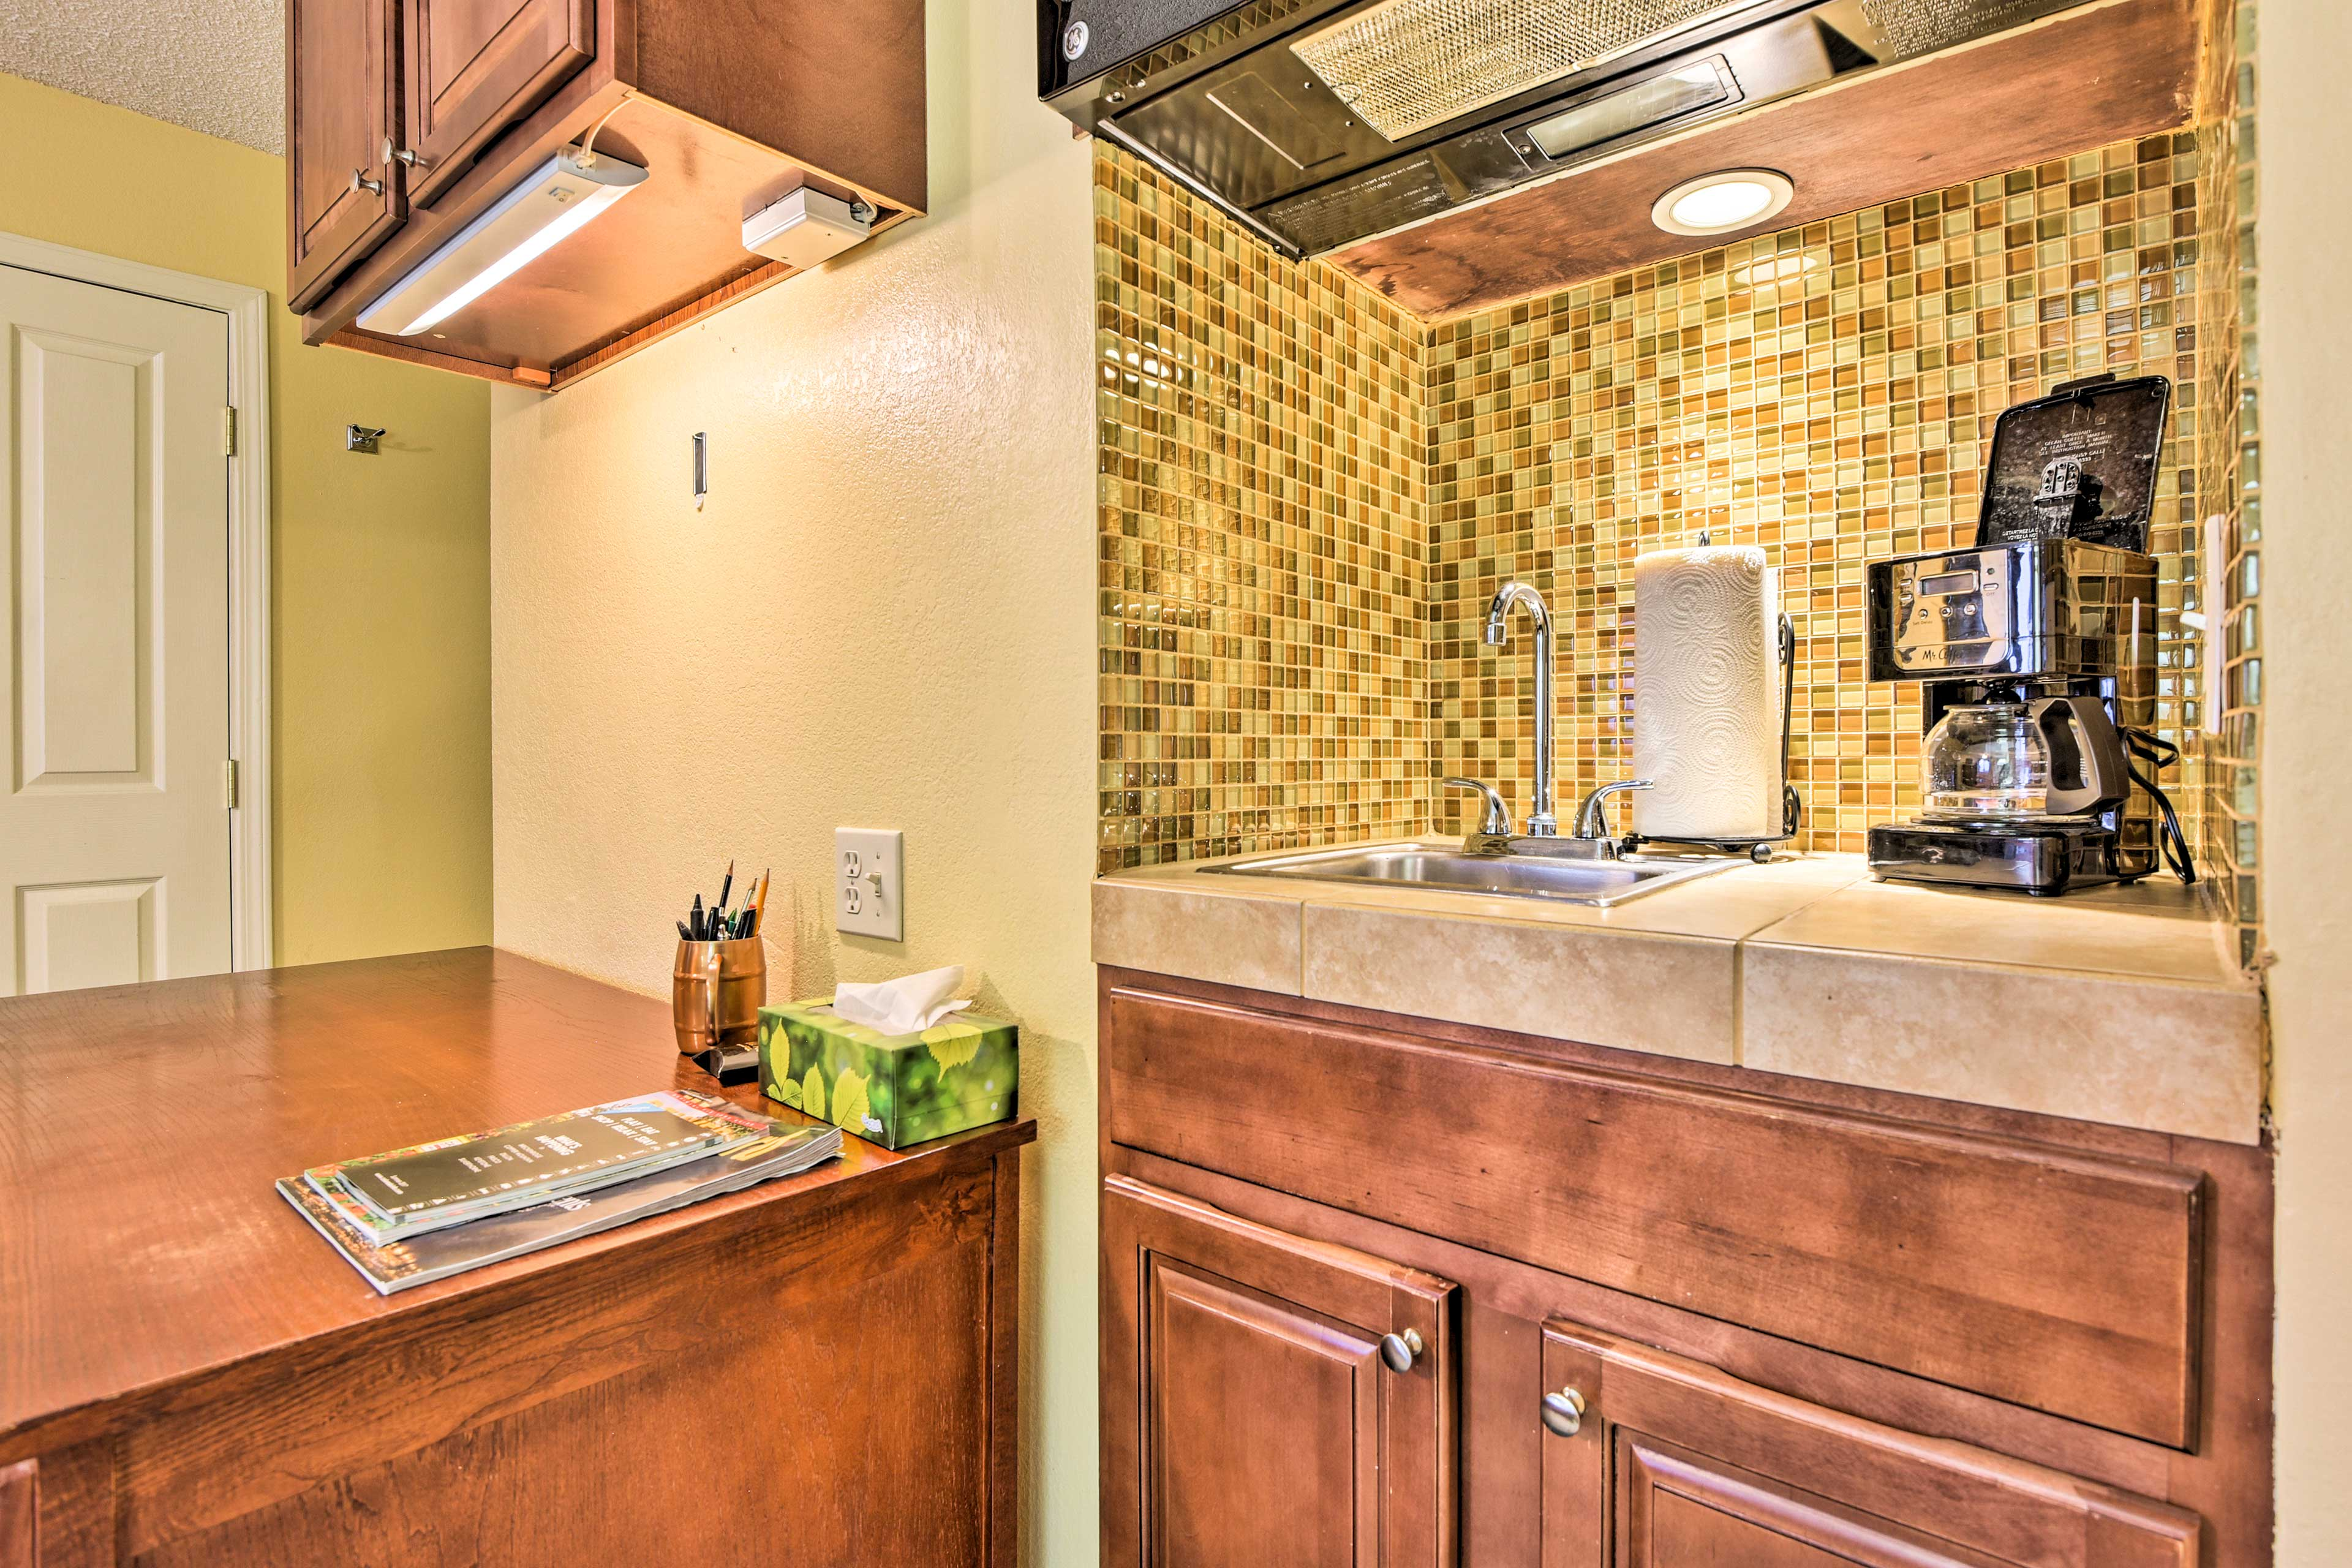 The kitchenette has a sink, coffeemaker and microwave.